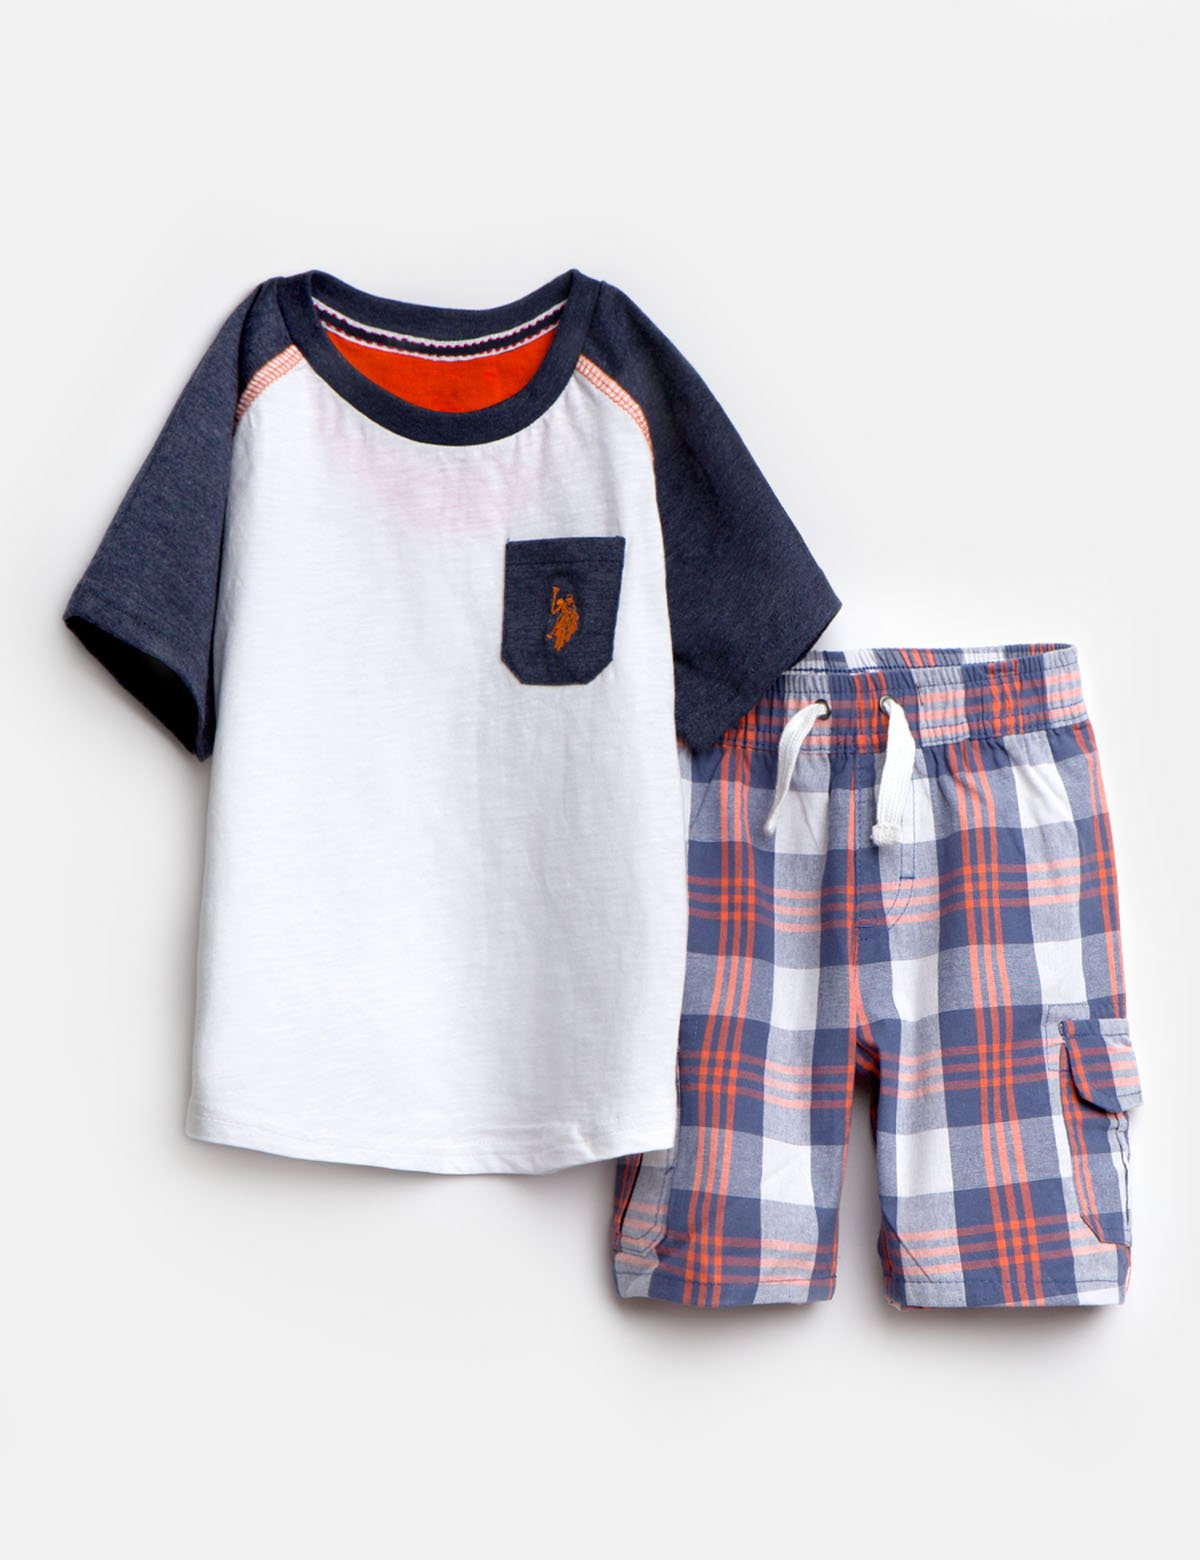 TODDLER 2 PIECE SET: TEE & SHORTS